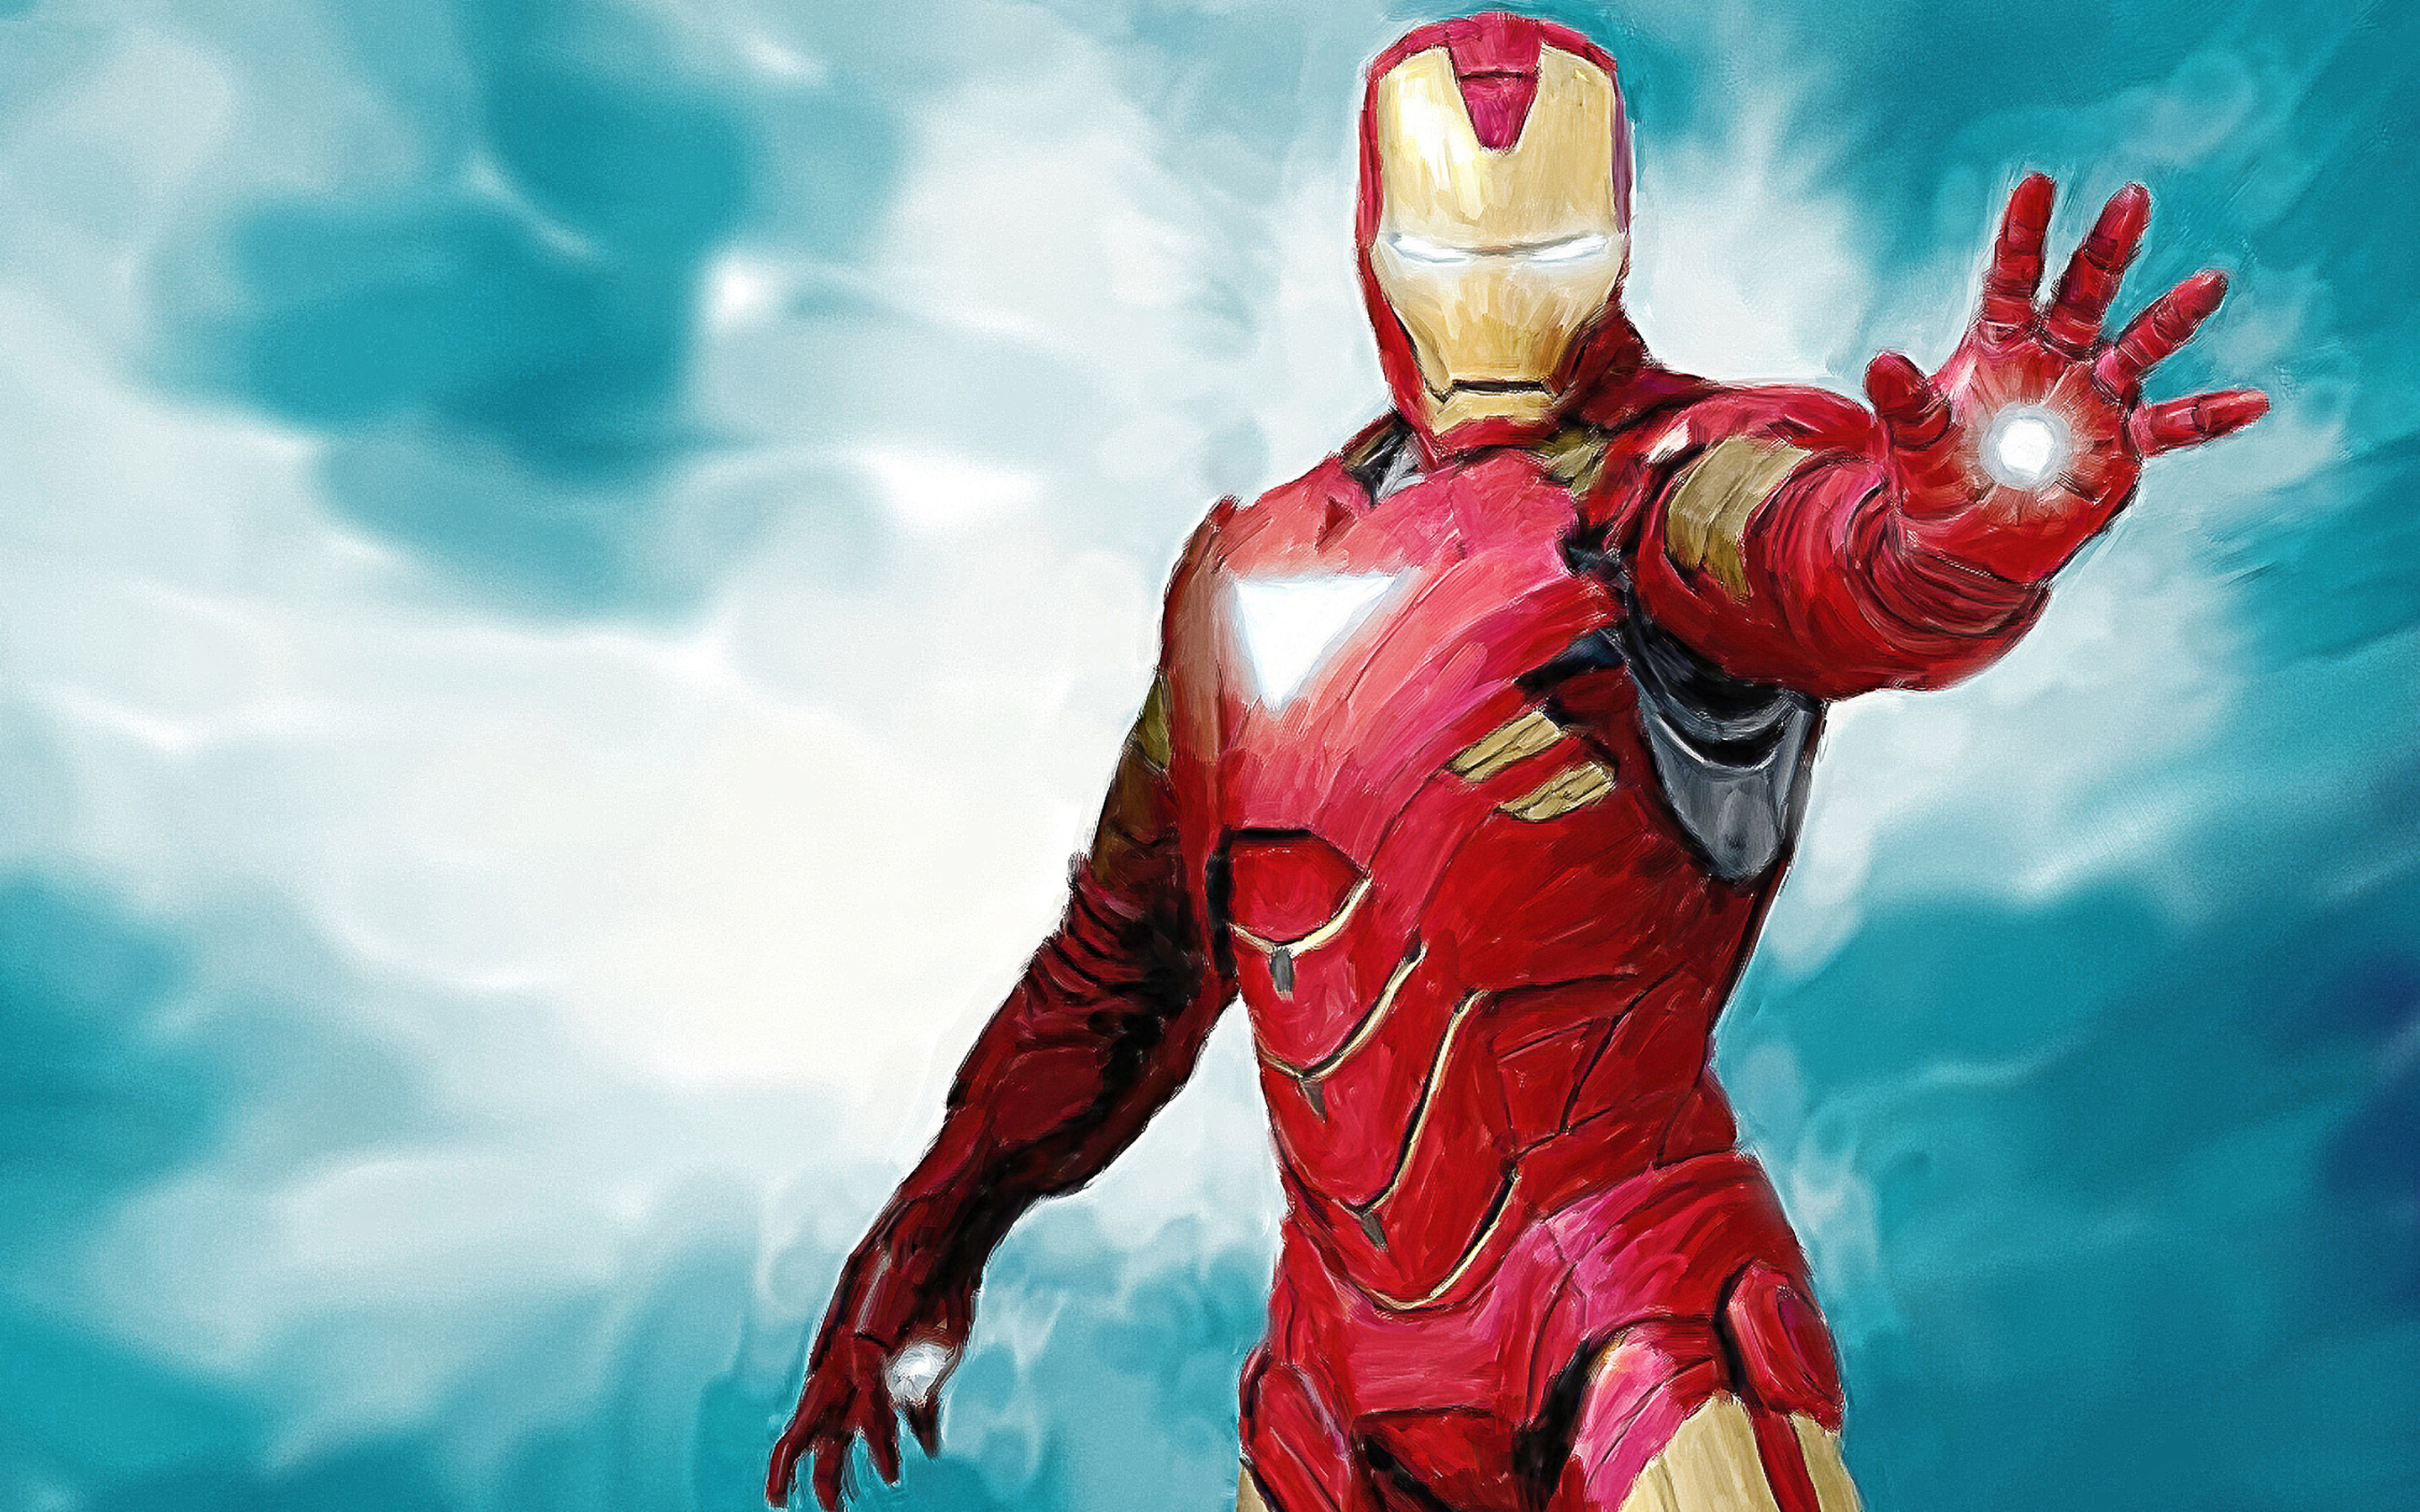 2880x1800 Iron Man Paint Macbook Pro Retina HD 4k Wallpapers, Images